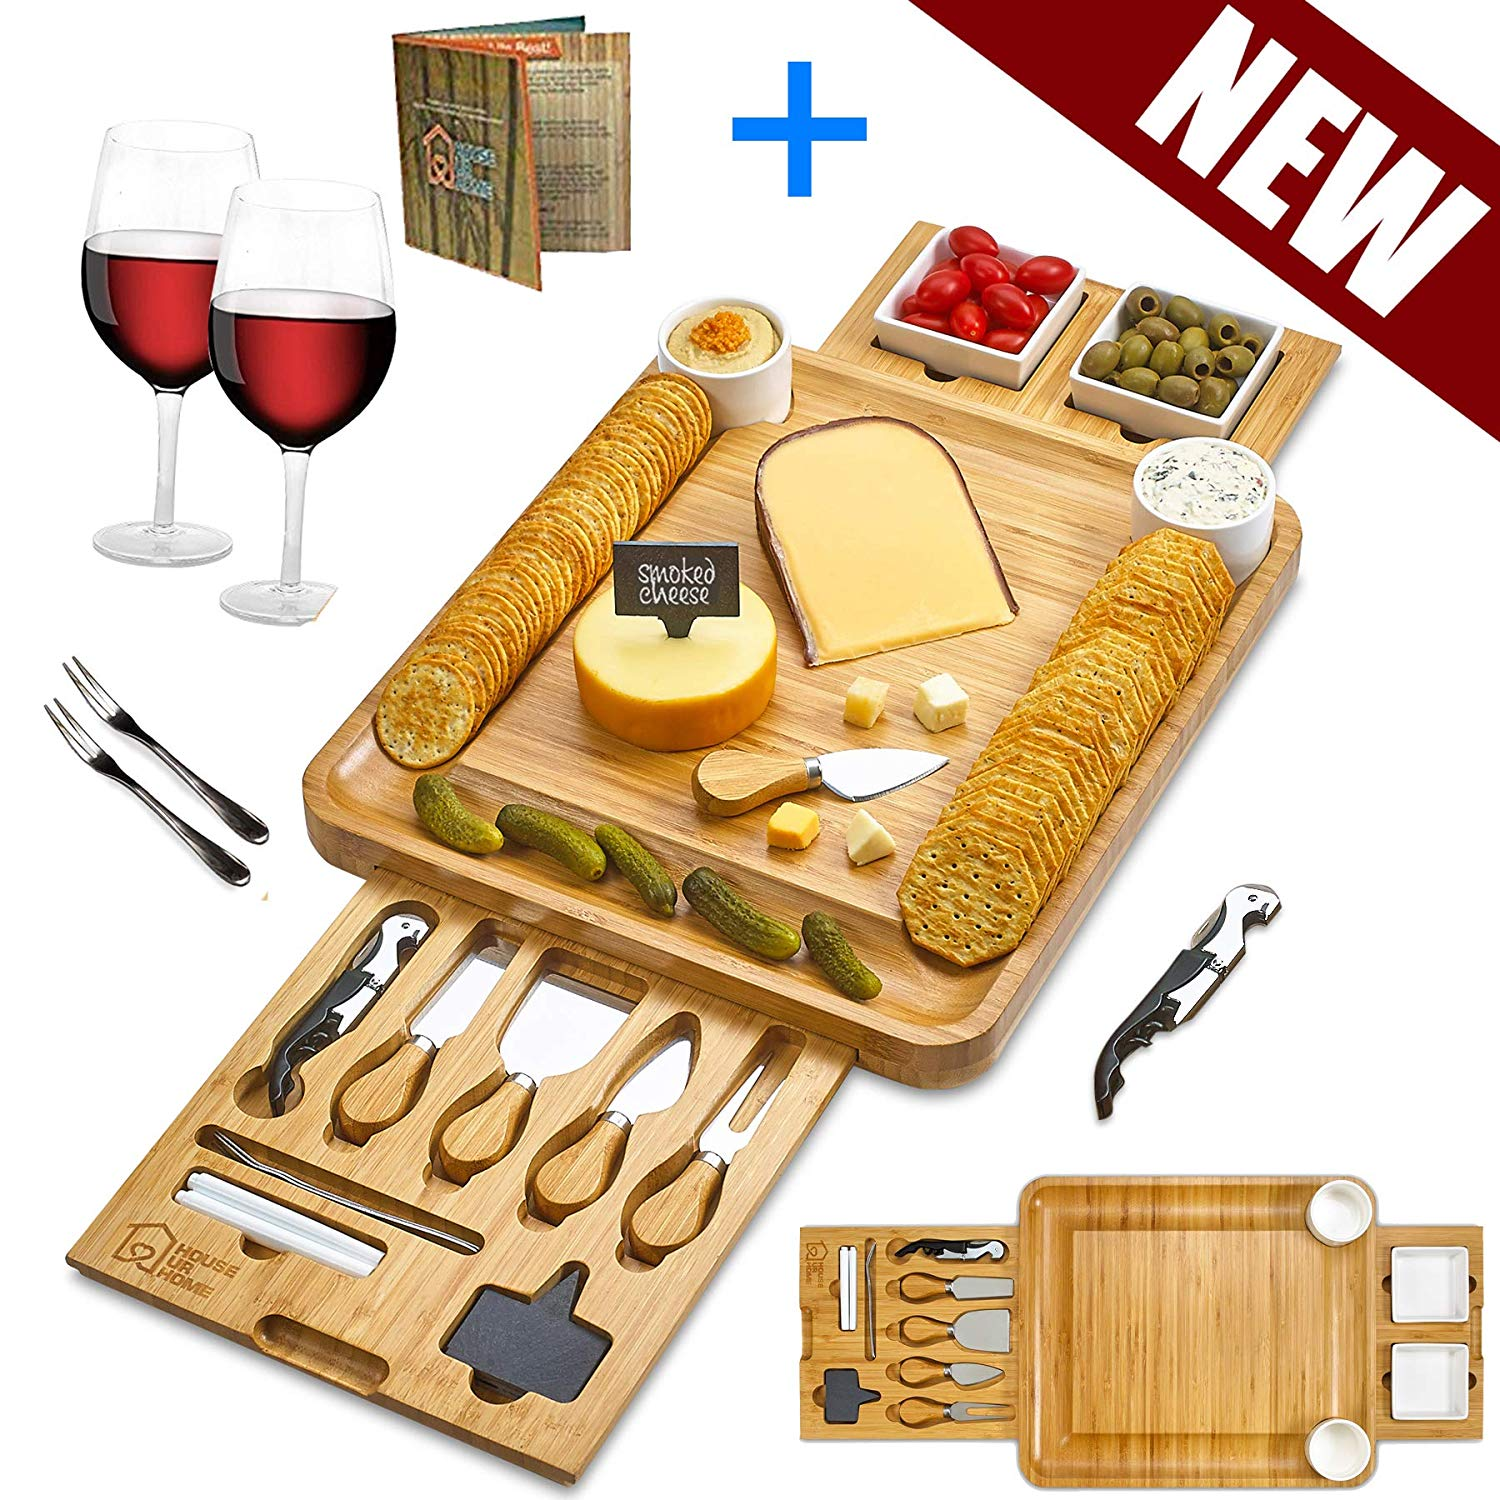 Cheese Board 2 Ceramic Bowls 2 Serving Plates. Magnetic 2 Drawers Bamboo Charcuterie Cutlery Knife Set, 2 Server Forks, Wine Opener, Labels, Markers, Gift for Birthdays, Wedding Registry,Housewarming